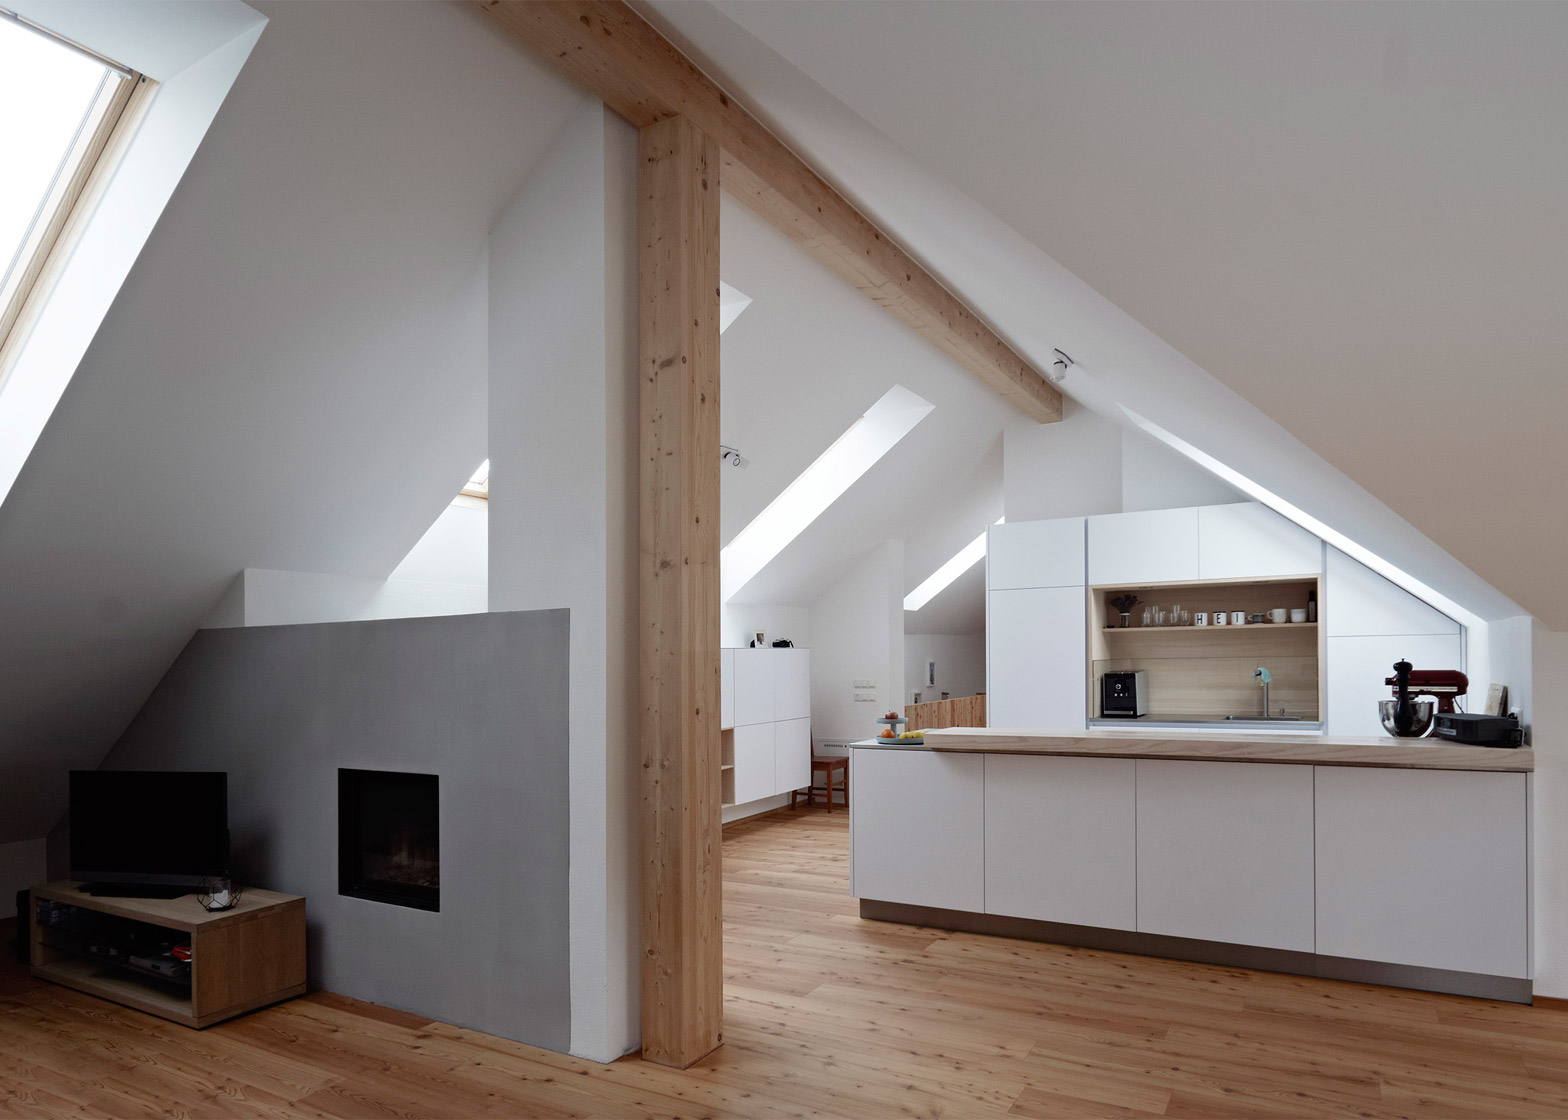 Bad Design Modern Traditional Farmhouse In Austria Updated With Contemporary Extension